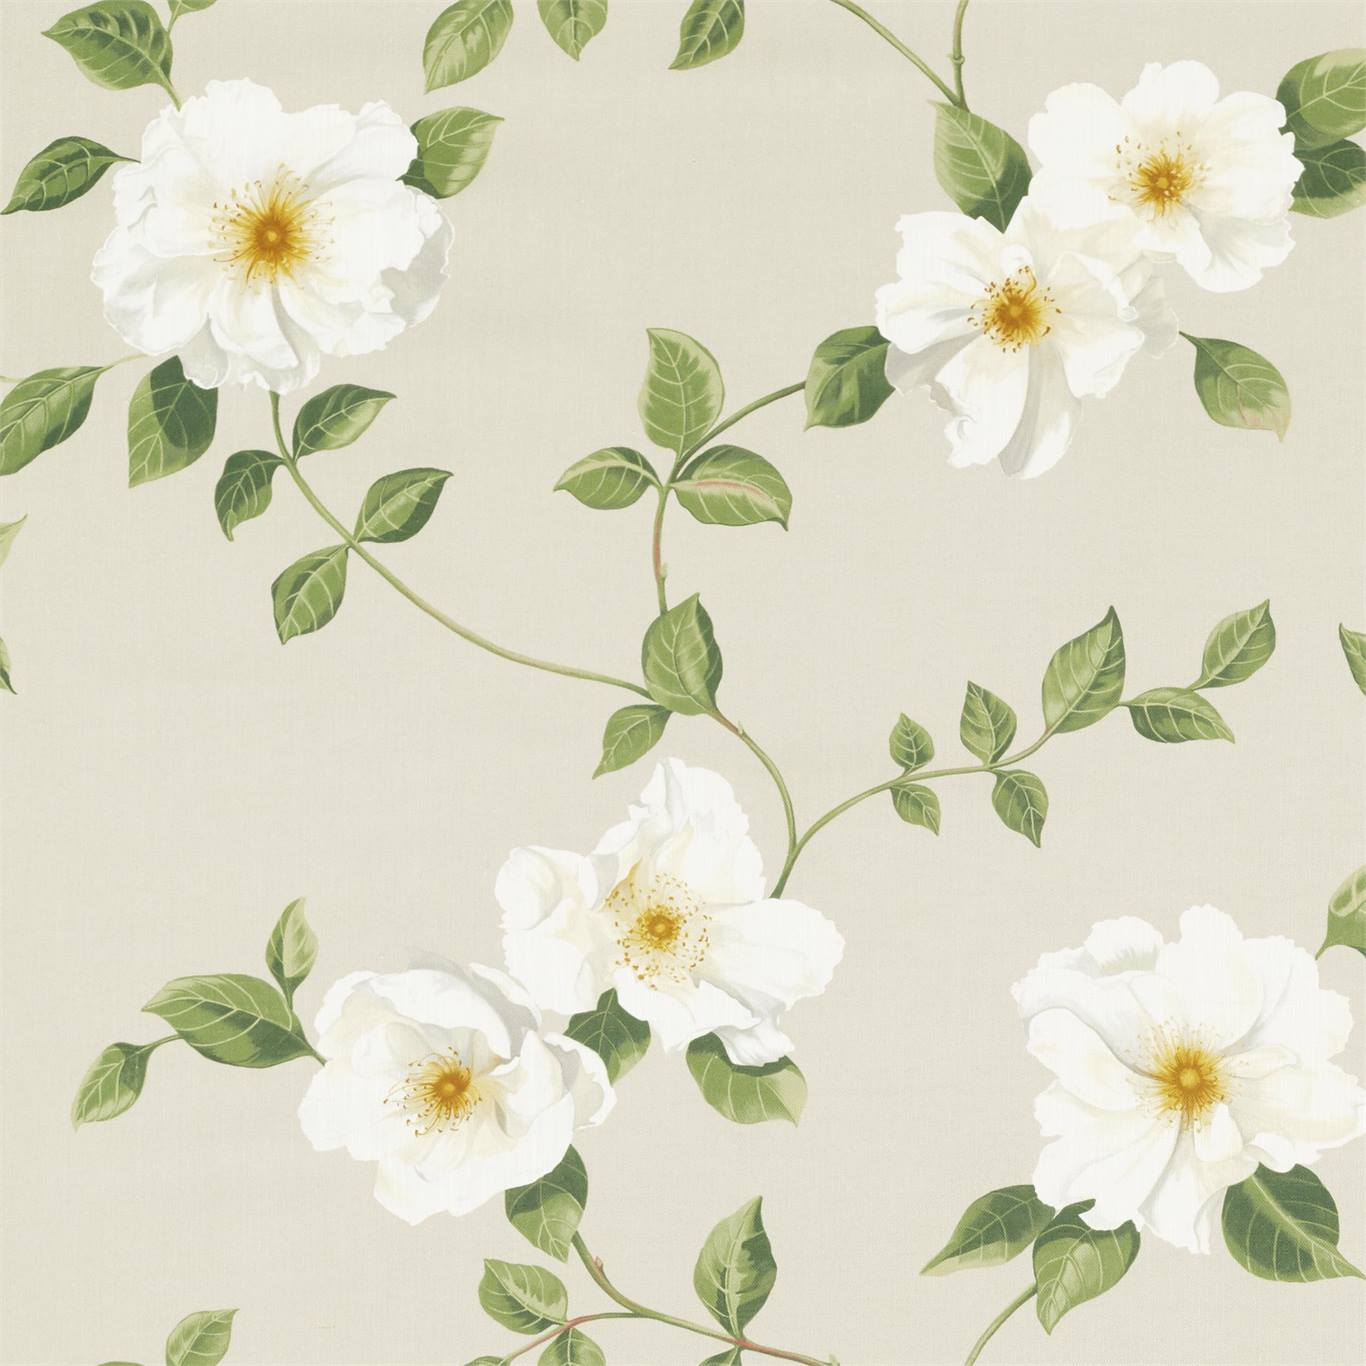 DNTF226738 Collection - National Trust Fabric